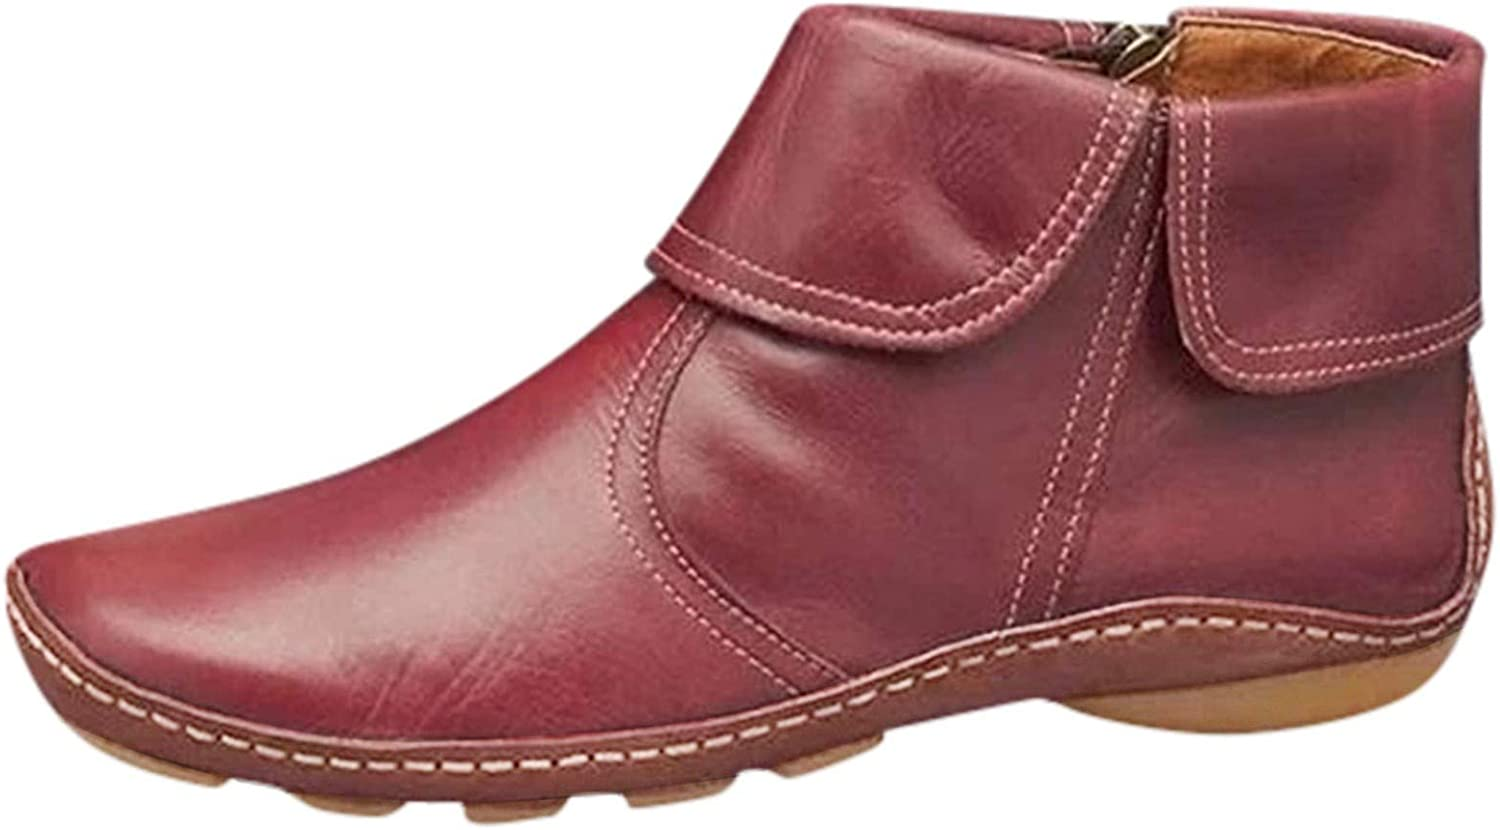 AODONG Cowboy Boots for Women Flat Leather Round Toe Hiking Cowgirl Boots Ankle Boots Slip On Zipper Work Boots